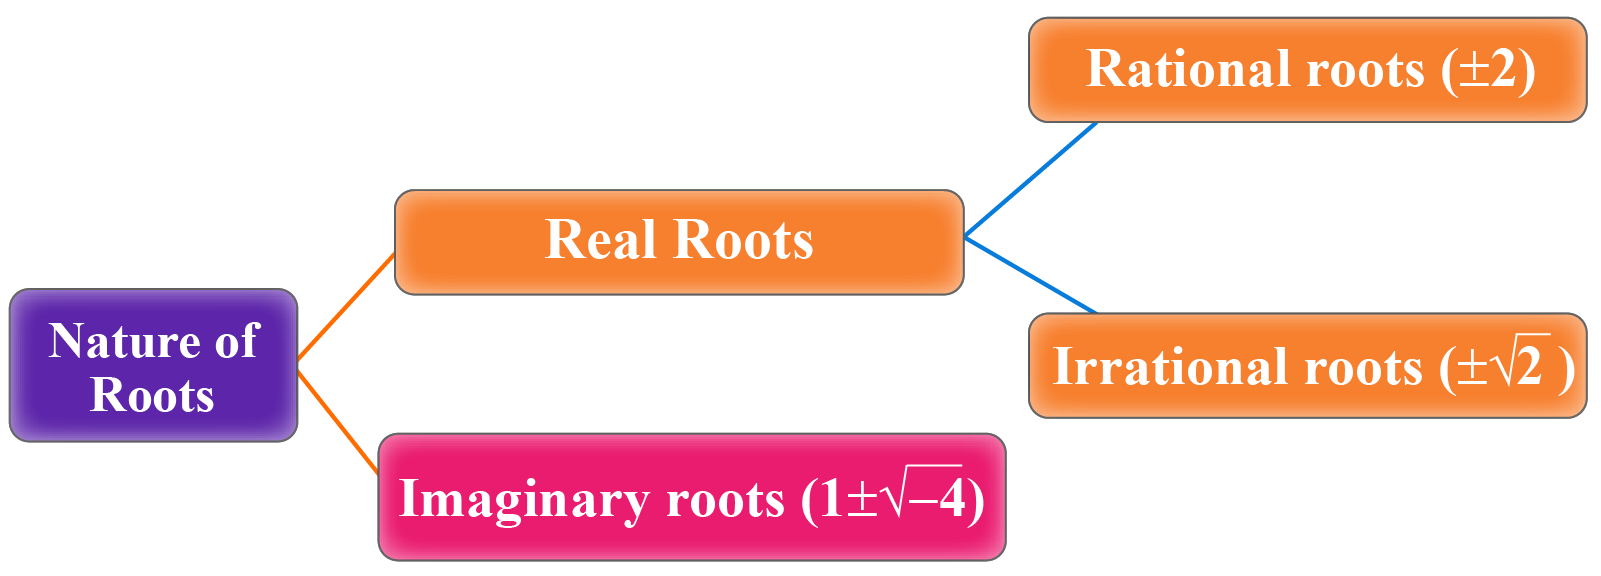 Nature of roots - real, imaginary, rational and irrational